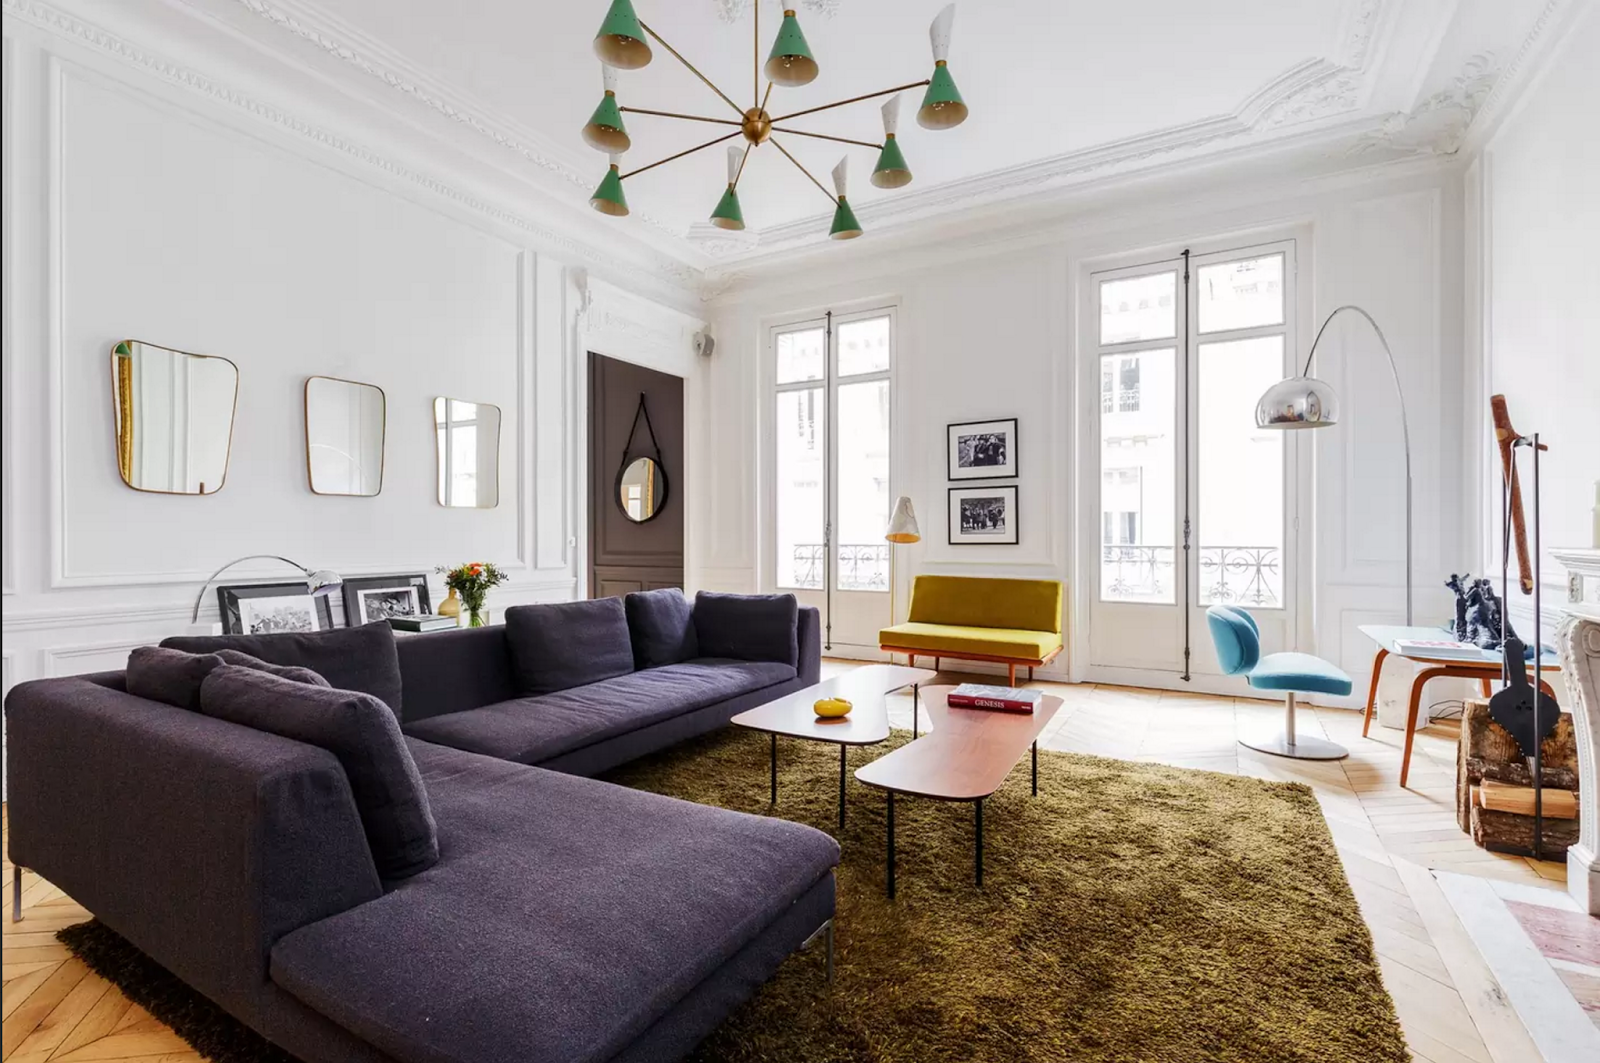 Spectacular Parisian Apartment with Mid Century Modern Furniture